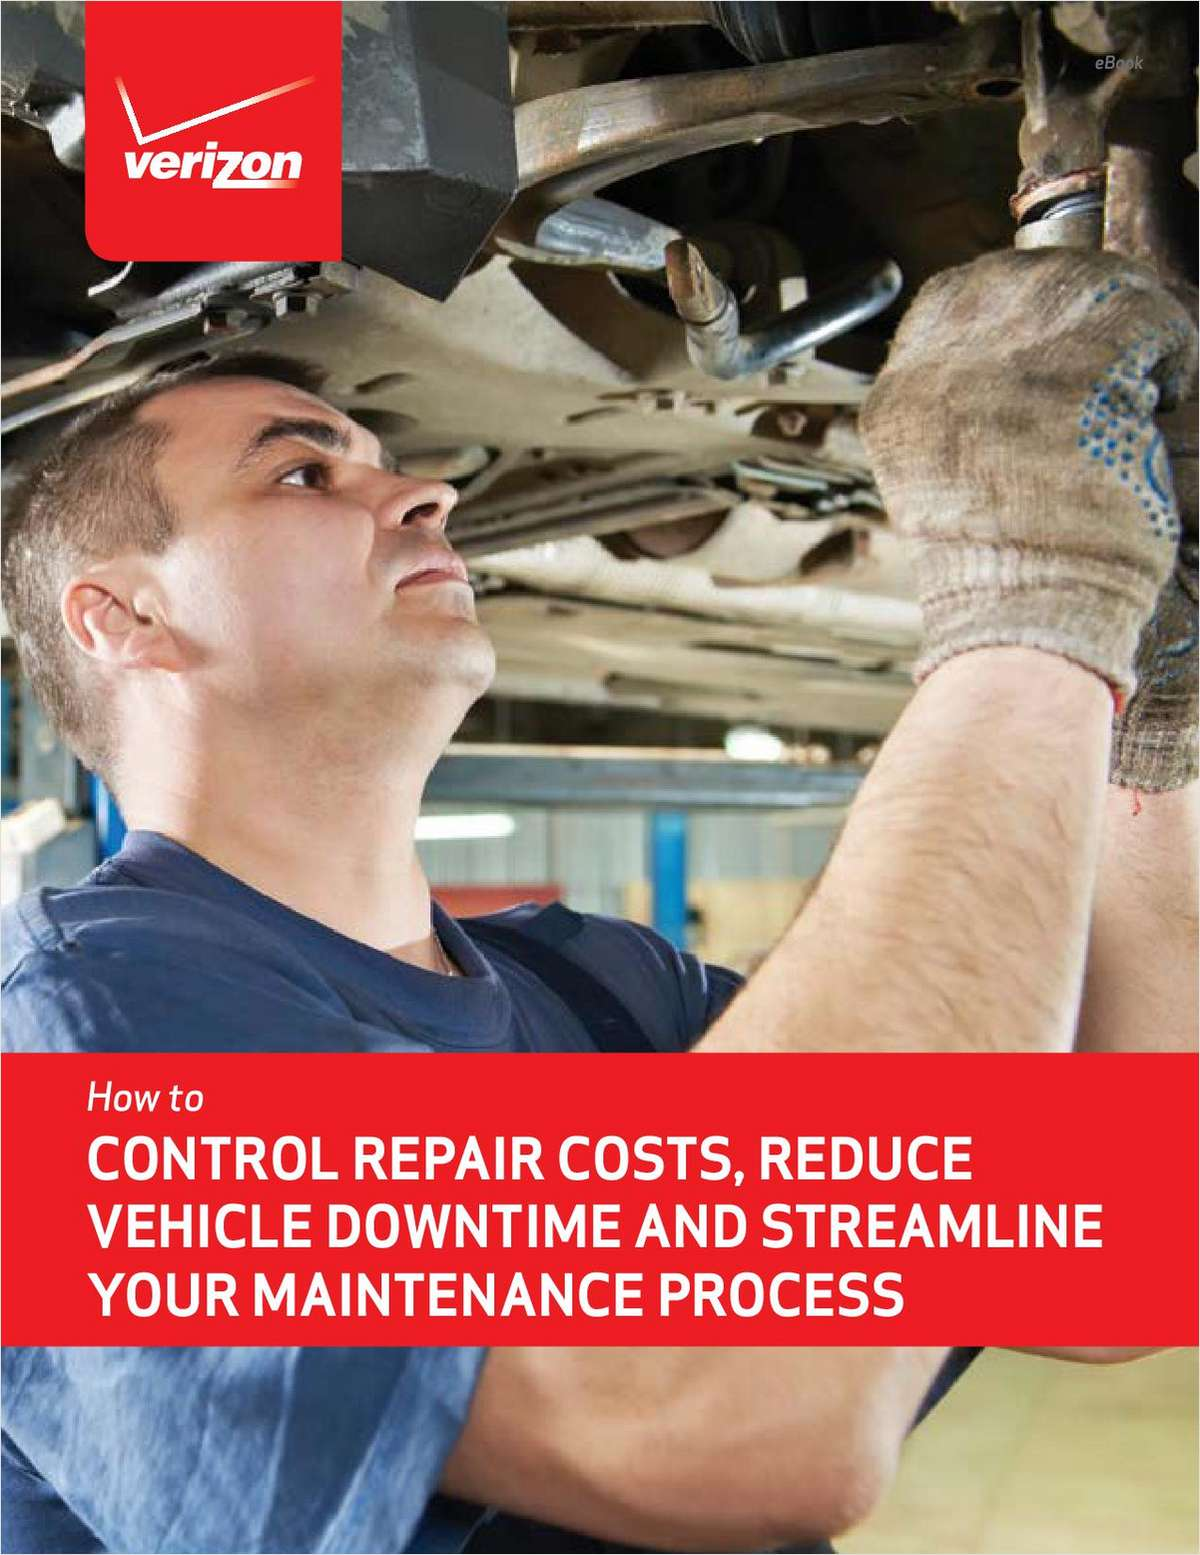 Streamline Your Maintenance Process for Reduced Costs and Downtime